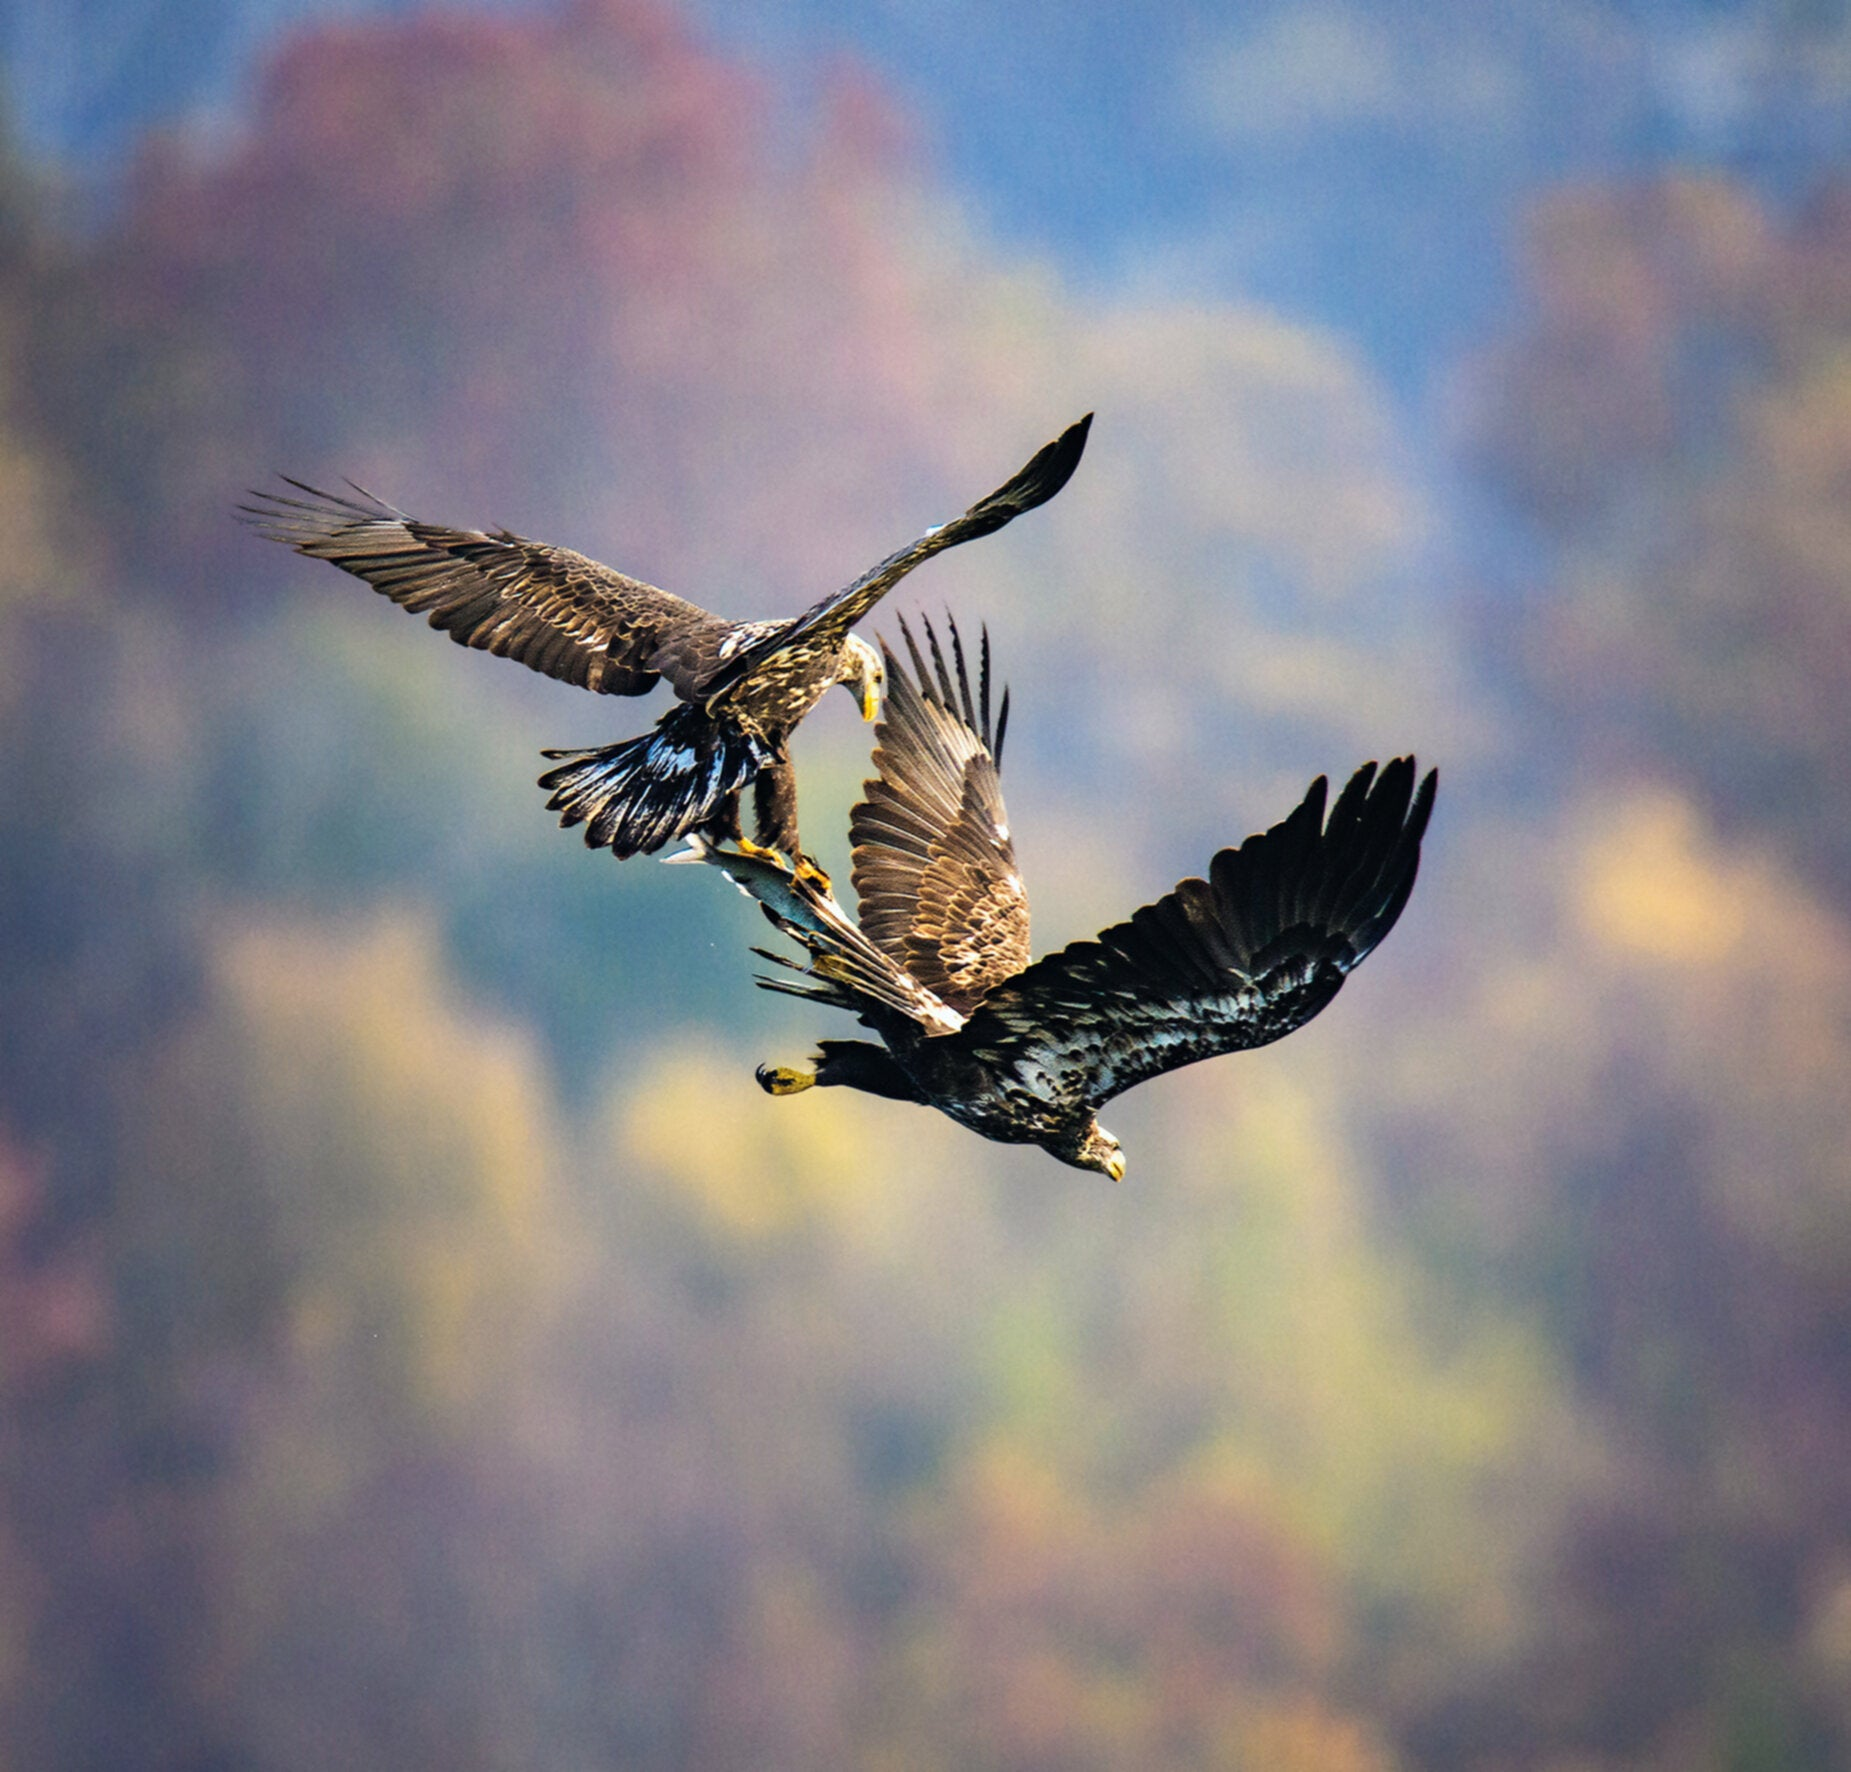 One of the most affecting sights in the natural world is watching birds of prey hunt